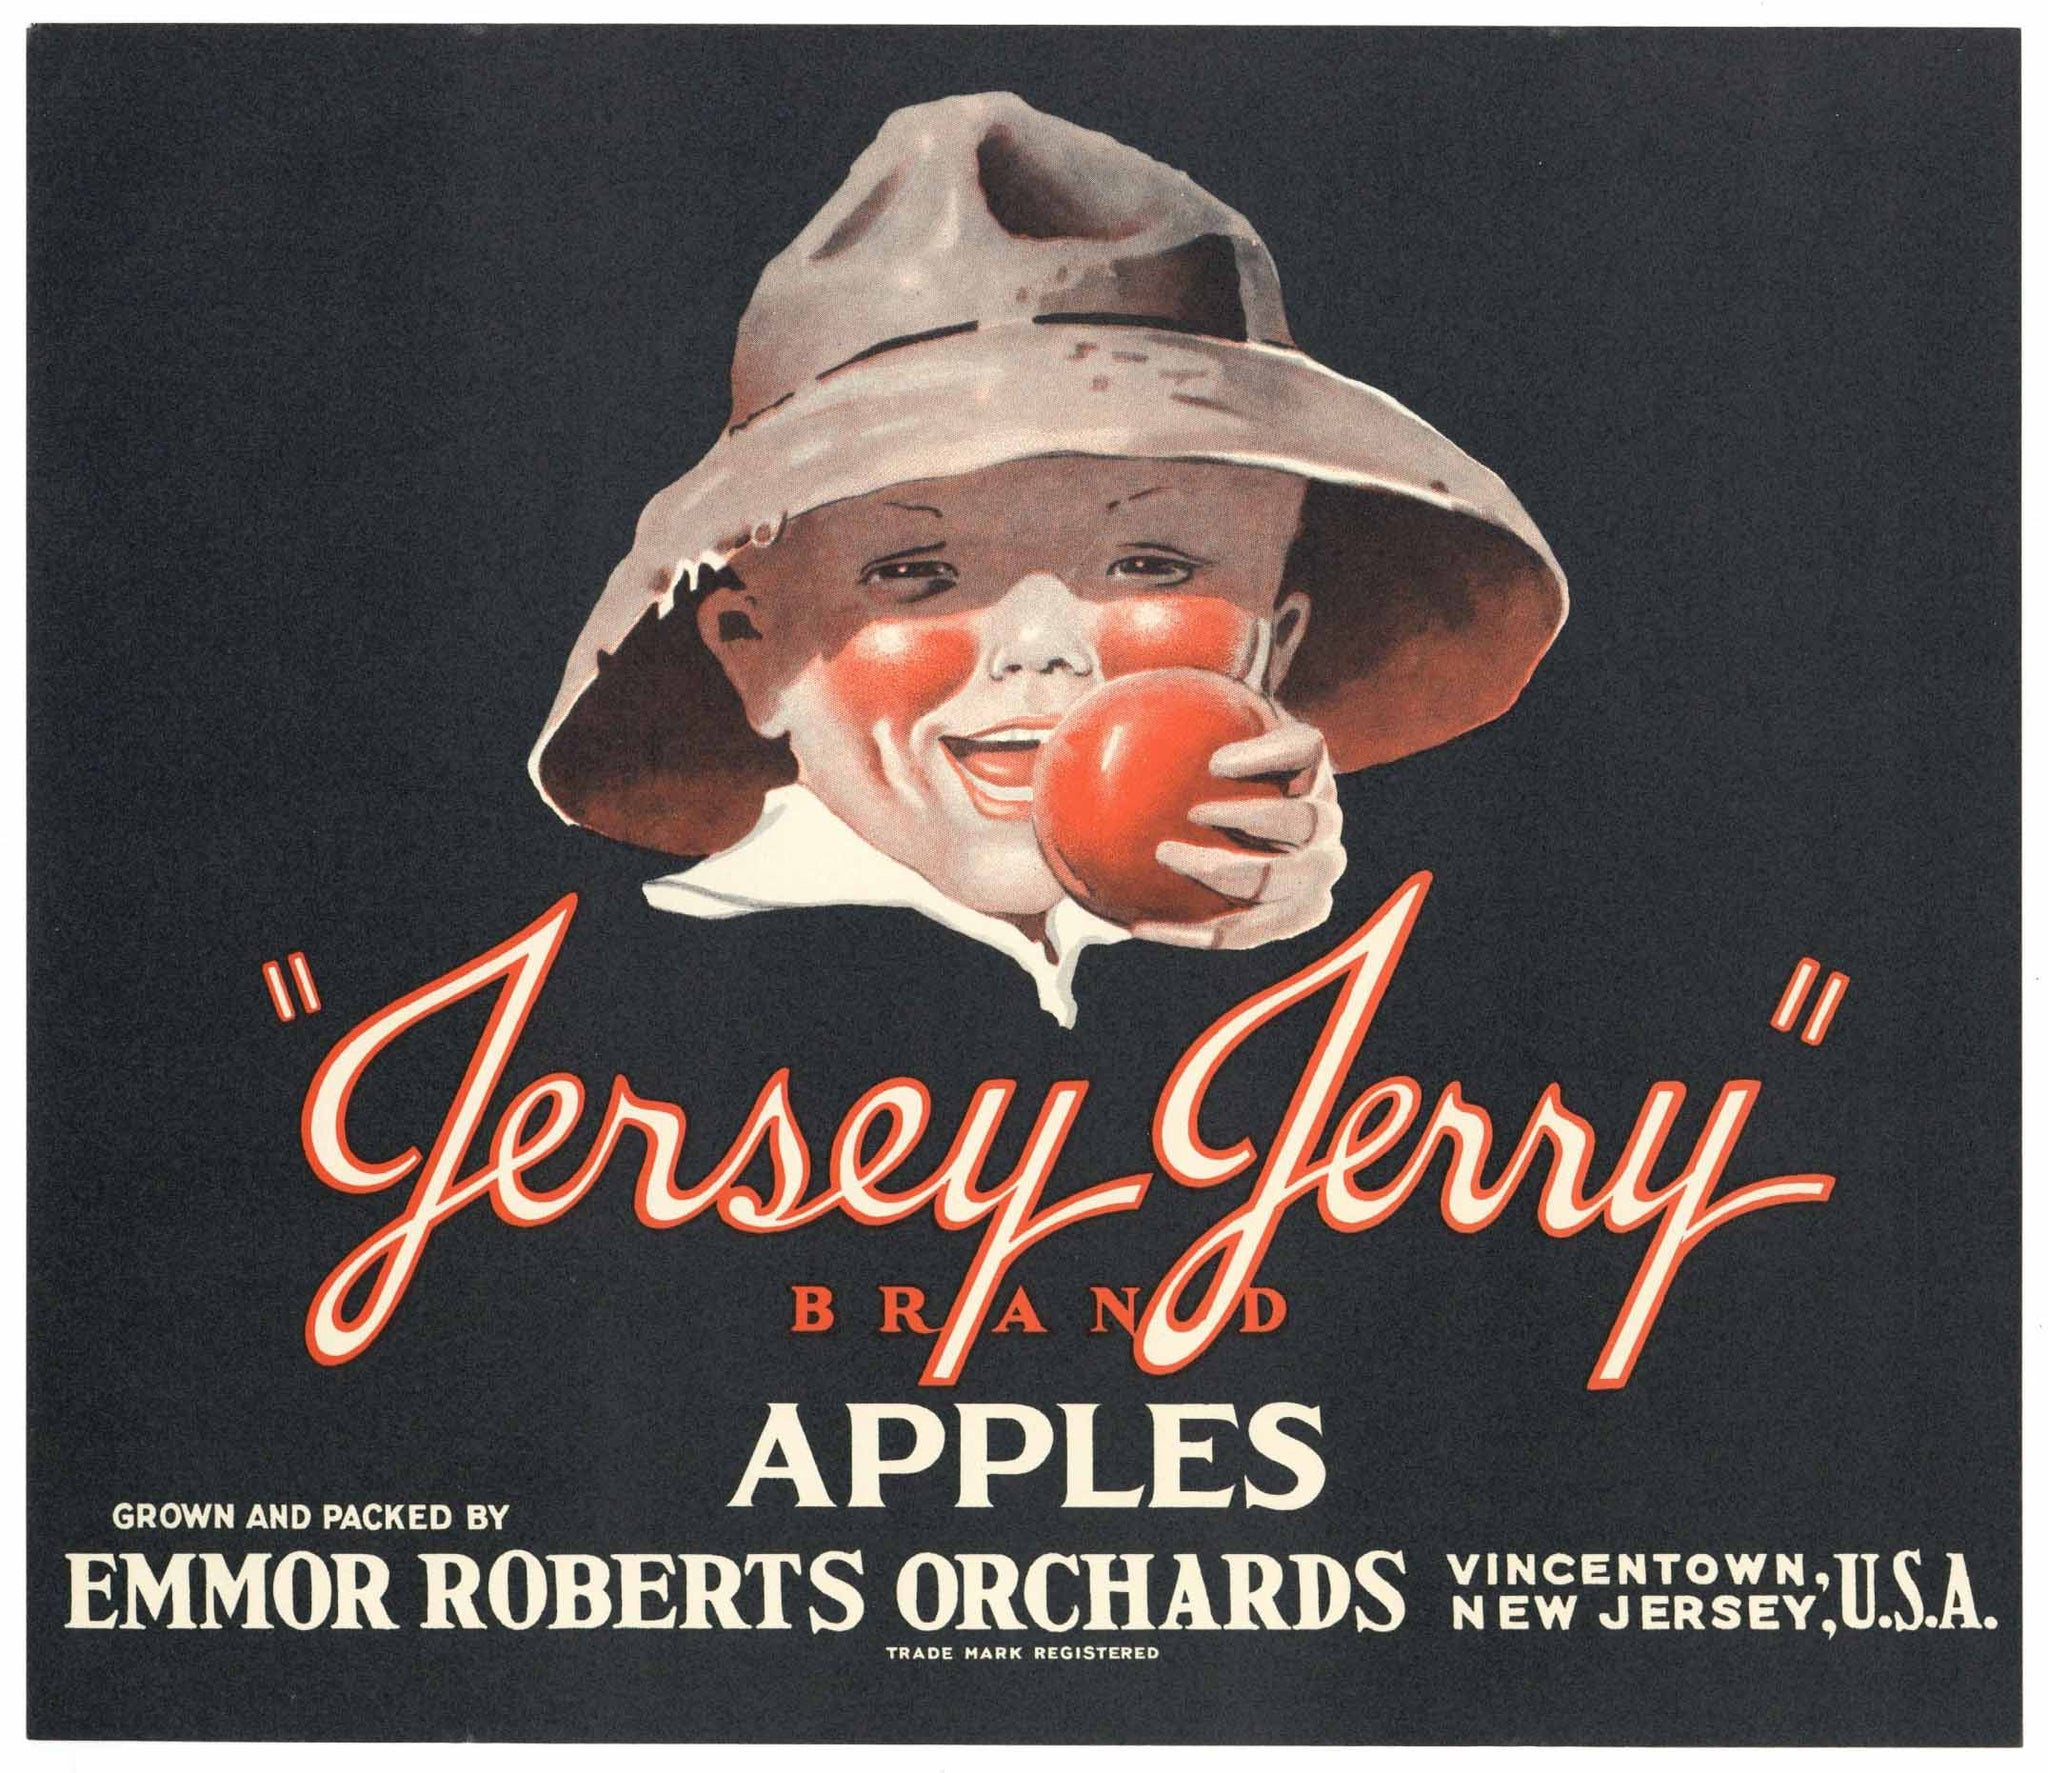 Jersey Jerry Brand Vintage Vincentown New Jersey Apple Crate Label